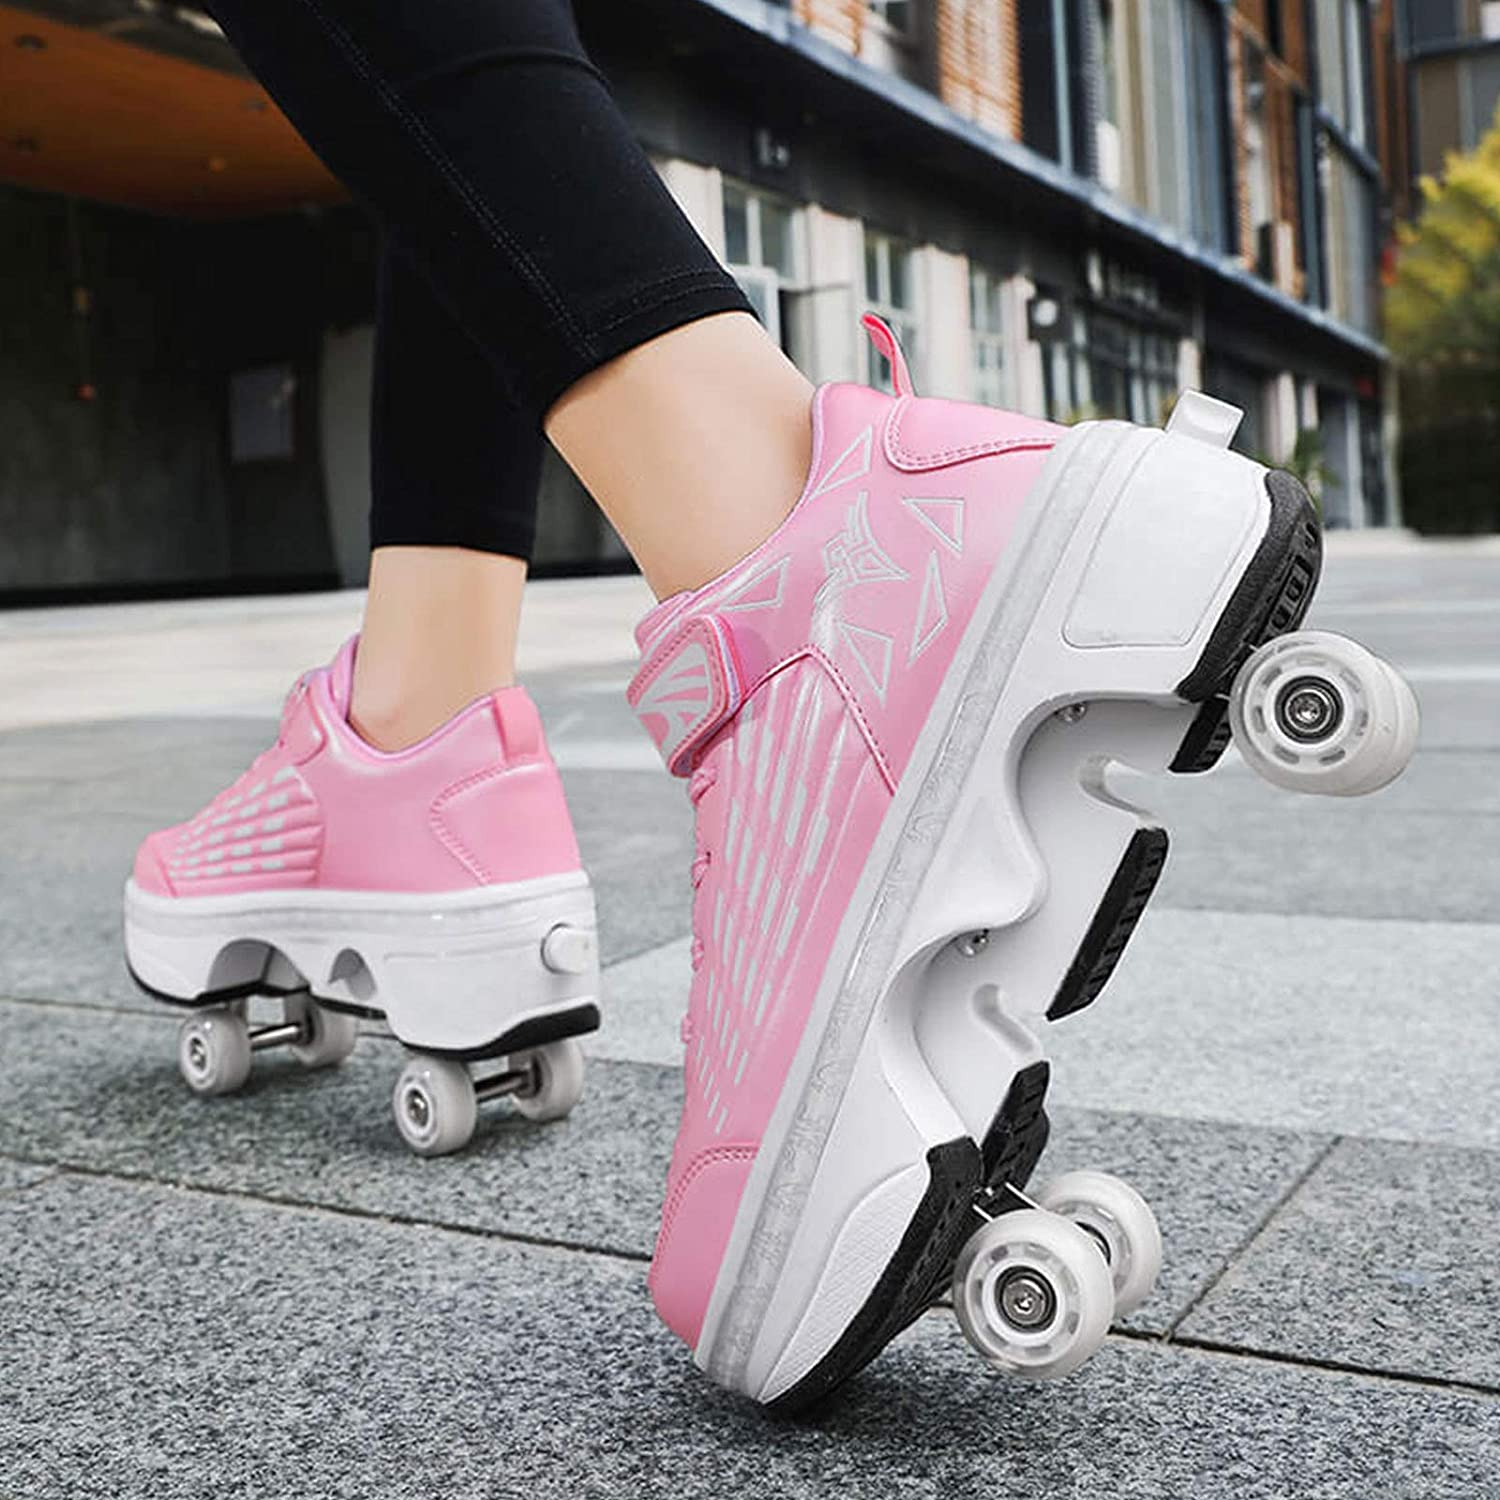 Women Pulley Shoes Superior 2 in Ranking TOP13 Multifunctional Roller Sk 1 Deformation